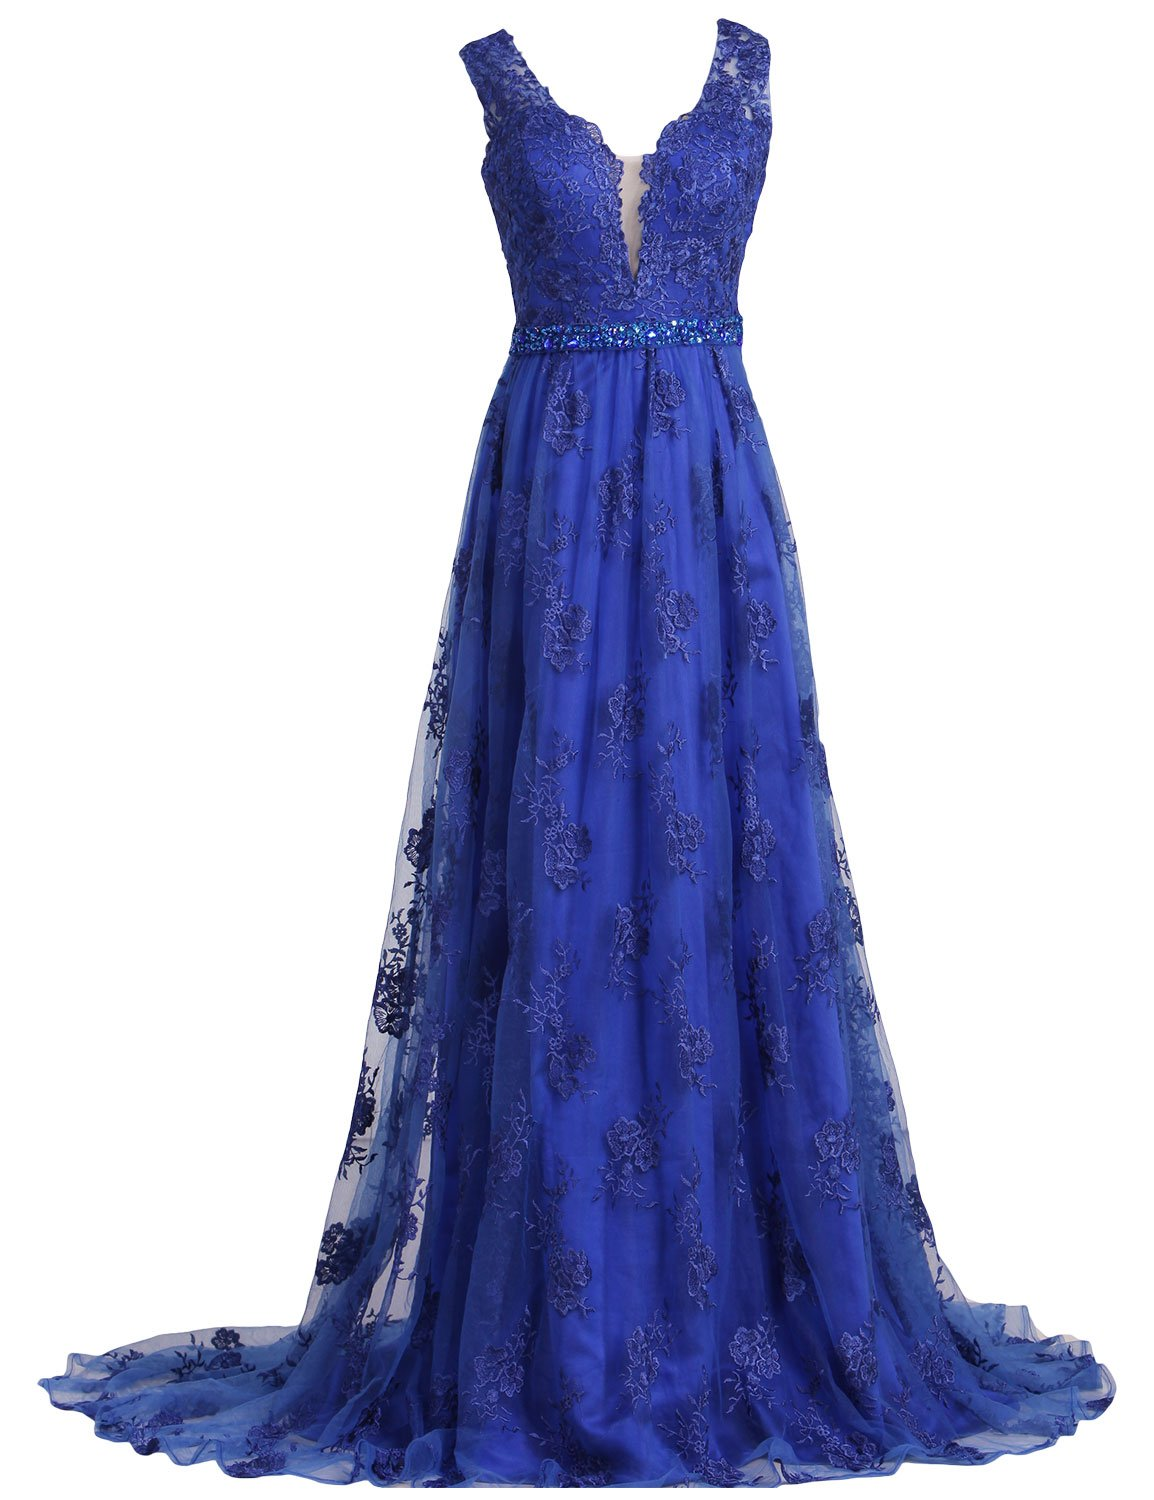 SeasonMall Womens Prom Dresses 2016 Lace V-Neck A Line Sleeveless Sweep Train With Beading Dress Size 0 Dark Royal Blue by SeasonMall (Image #1)